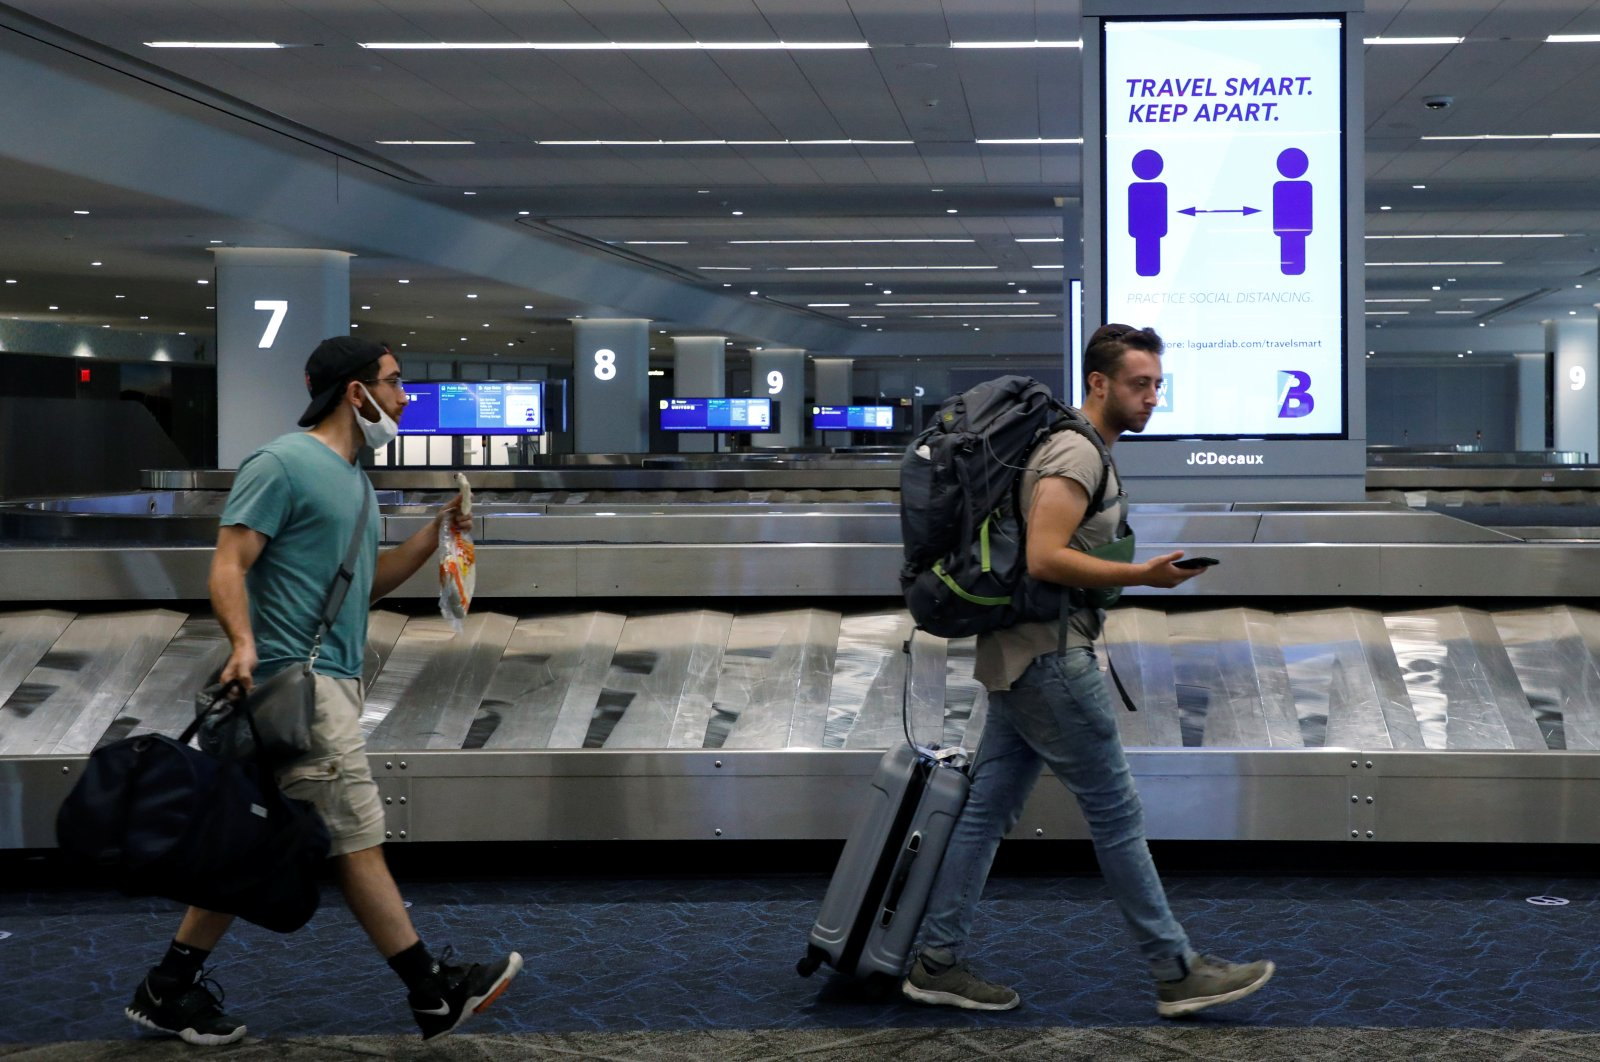 Travelers pass a sign alerting them to distance at LaGuardia Airport, during the outbreak of the coronavirus disease (COVID-19), in New York, U.S., June 29, 2020. (Reuters Photo)